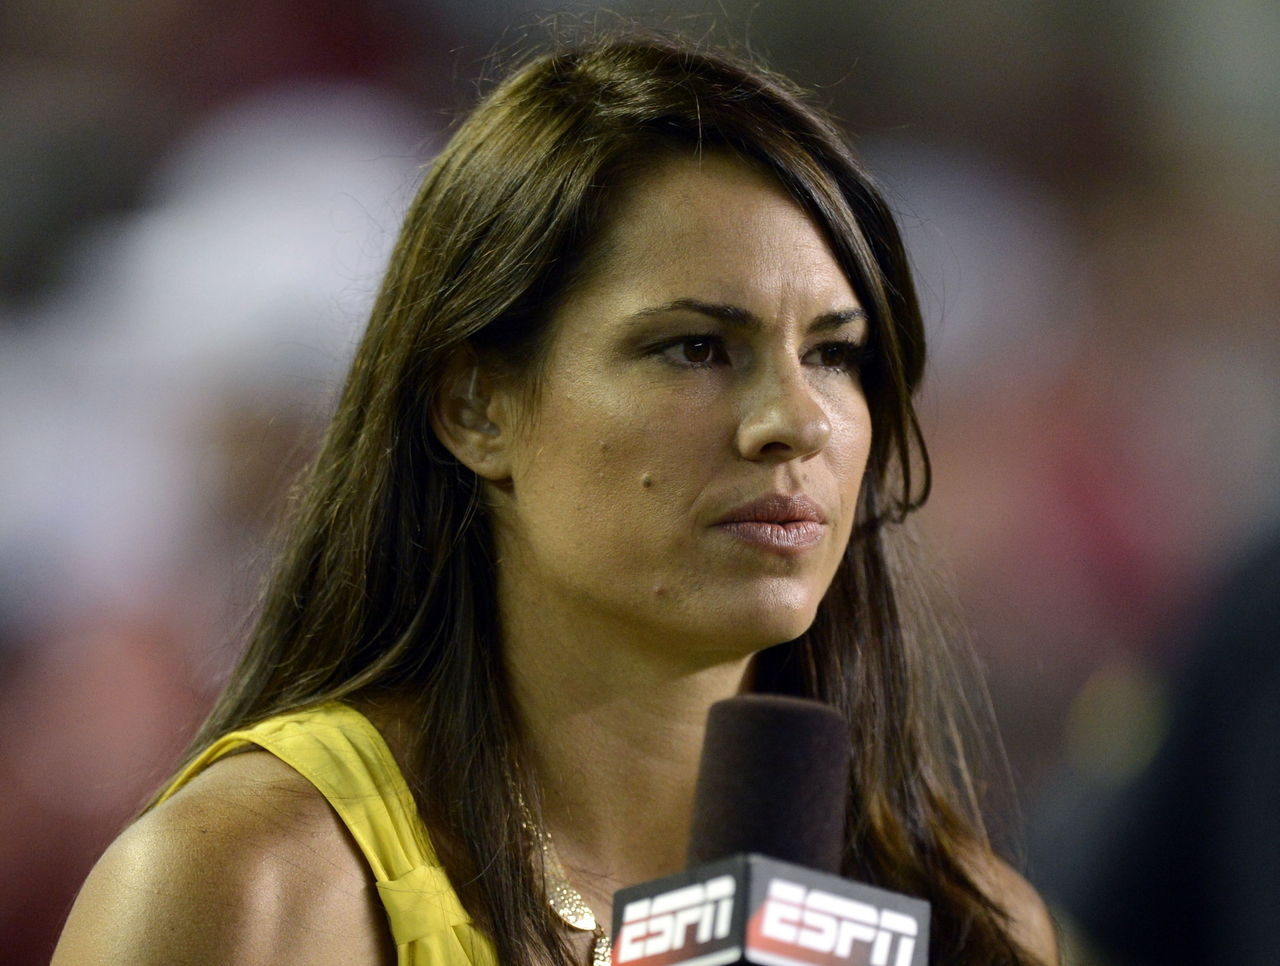 In Spite of the Haters, These Female Announcers Are Making Waves